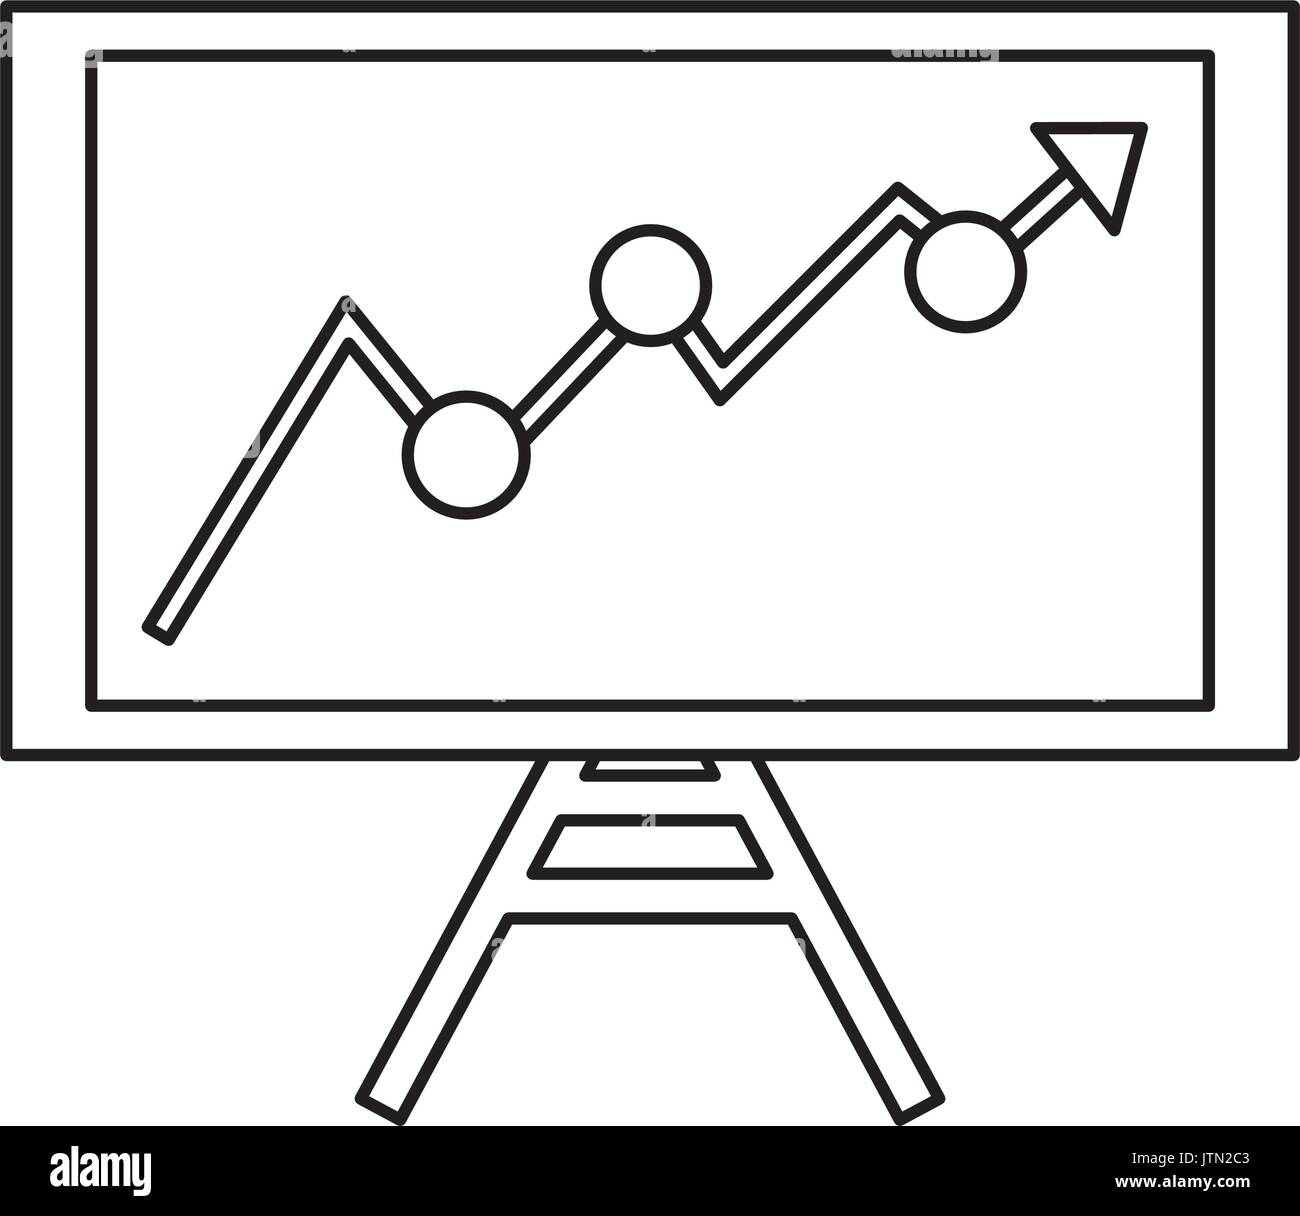 Graphic stats design - Stock Image